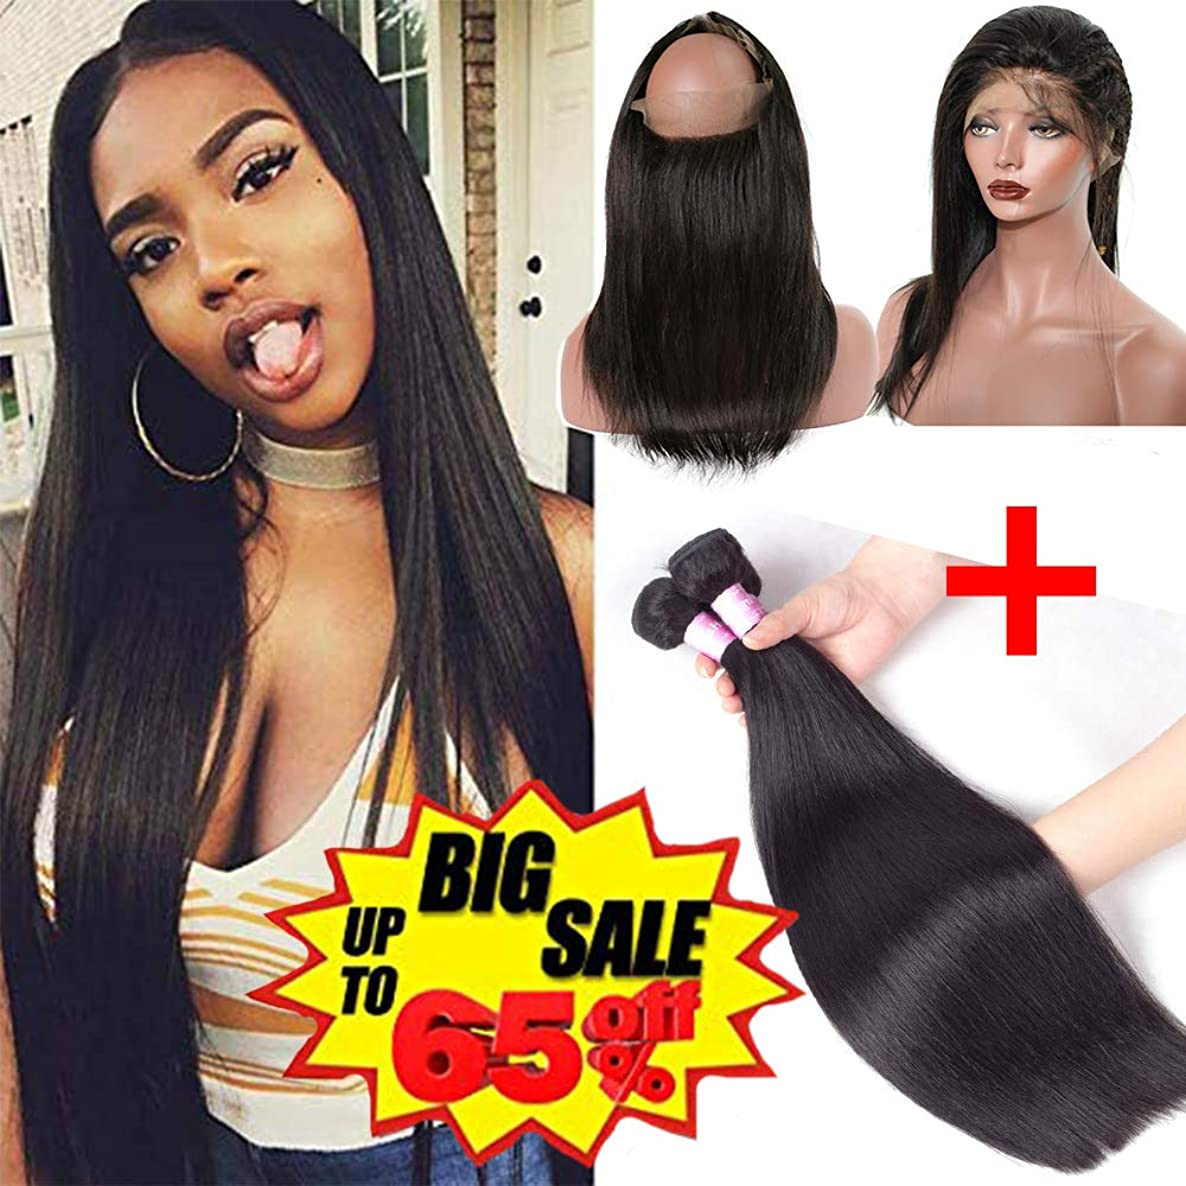 360 Lace Frontal with bundles 360 Lace closure With 2 Bundles 300g(16 18 with 14''360) Brazilian Straight Virgin Hair With 360 Lace Frontal Hair Extensions Natural Black Color, Can be Dyed